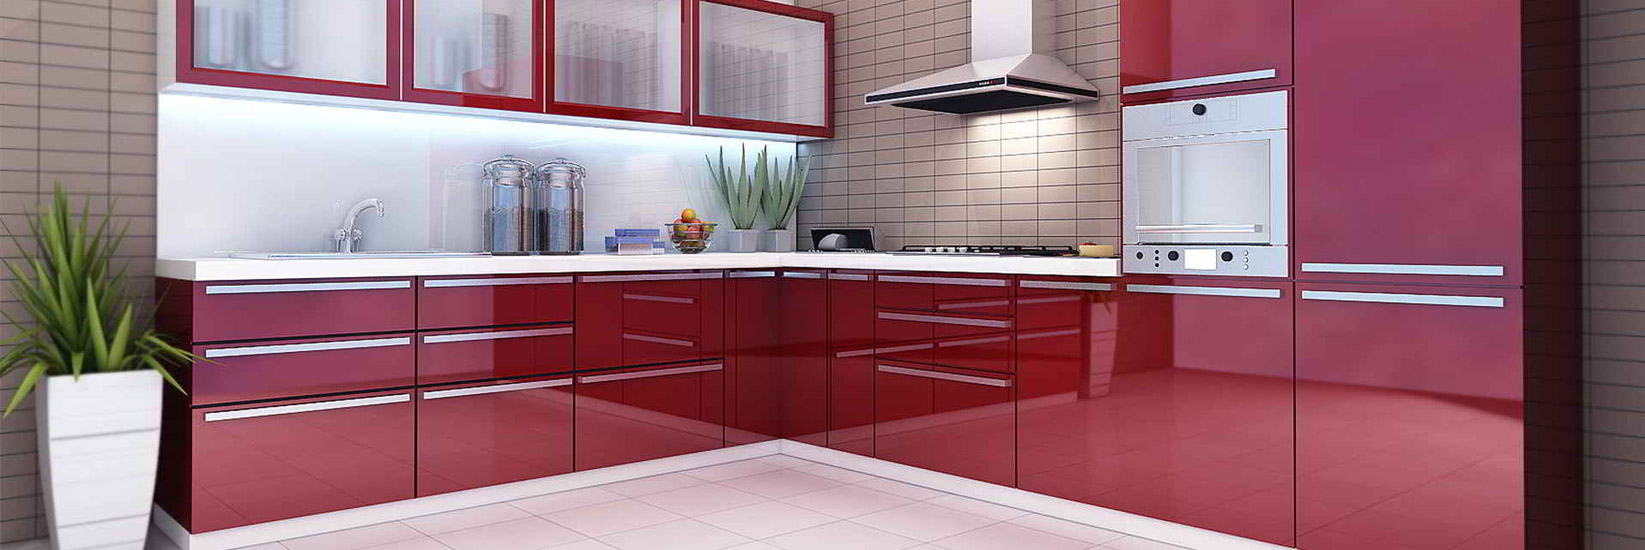 Modular Kitchen Dealers in Chennai | Digital Modular Kitchen on modular kitchen in bangalore, modular kitchen in hyderabad, modular kitchen in mumbai, modular kitchen in kerala, marriage halls in chennai,